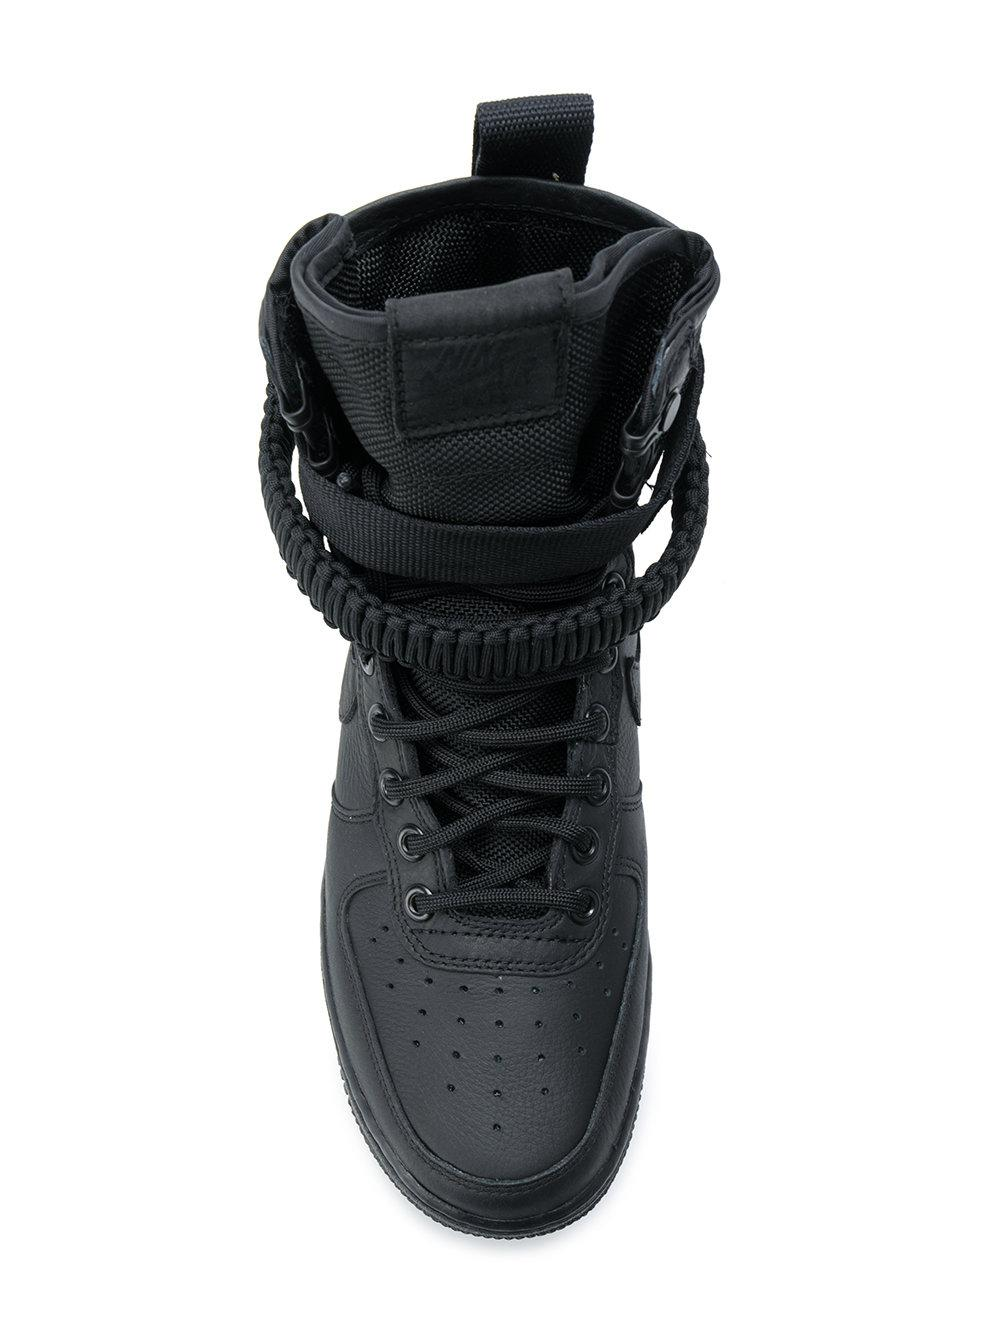 Nike Leather Sf Air Force 1 Sneakers in Black